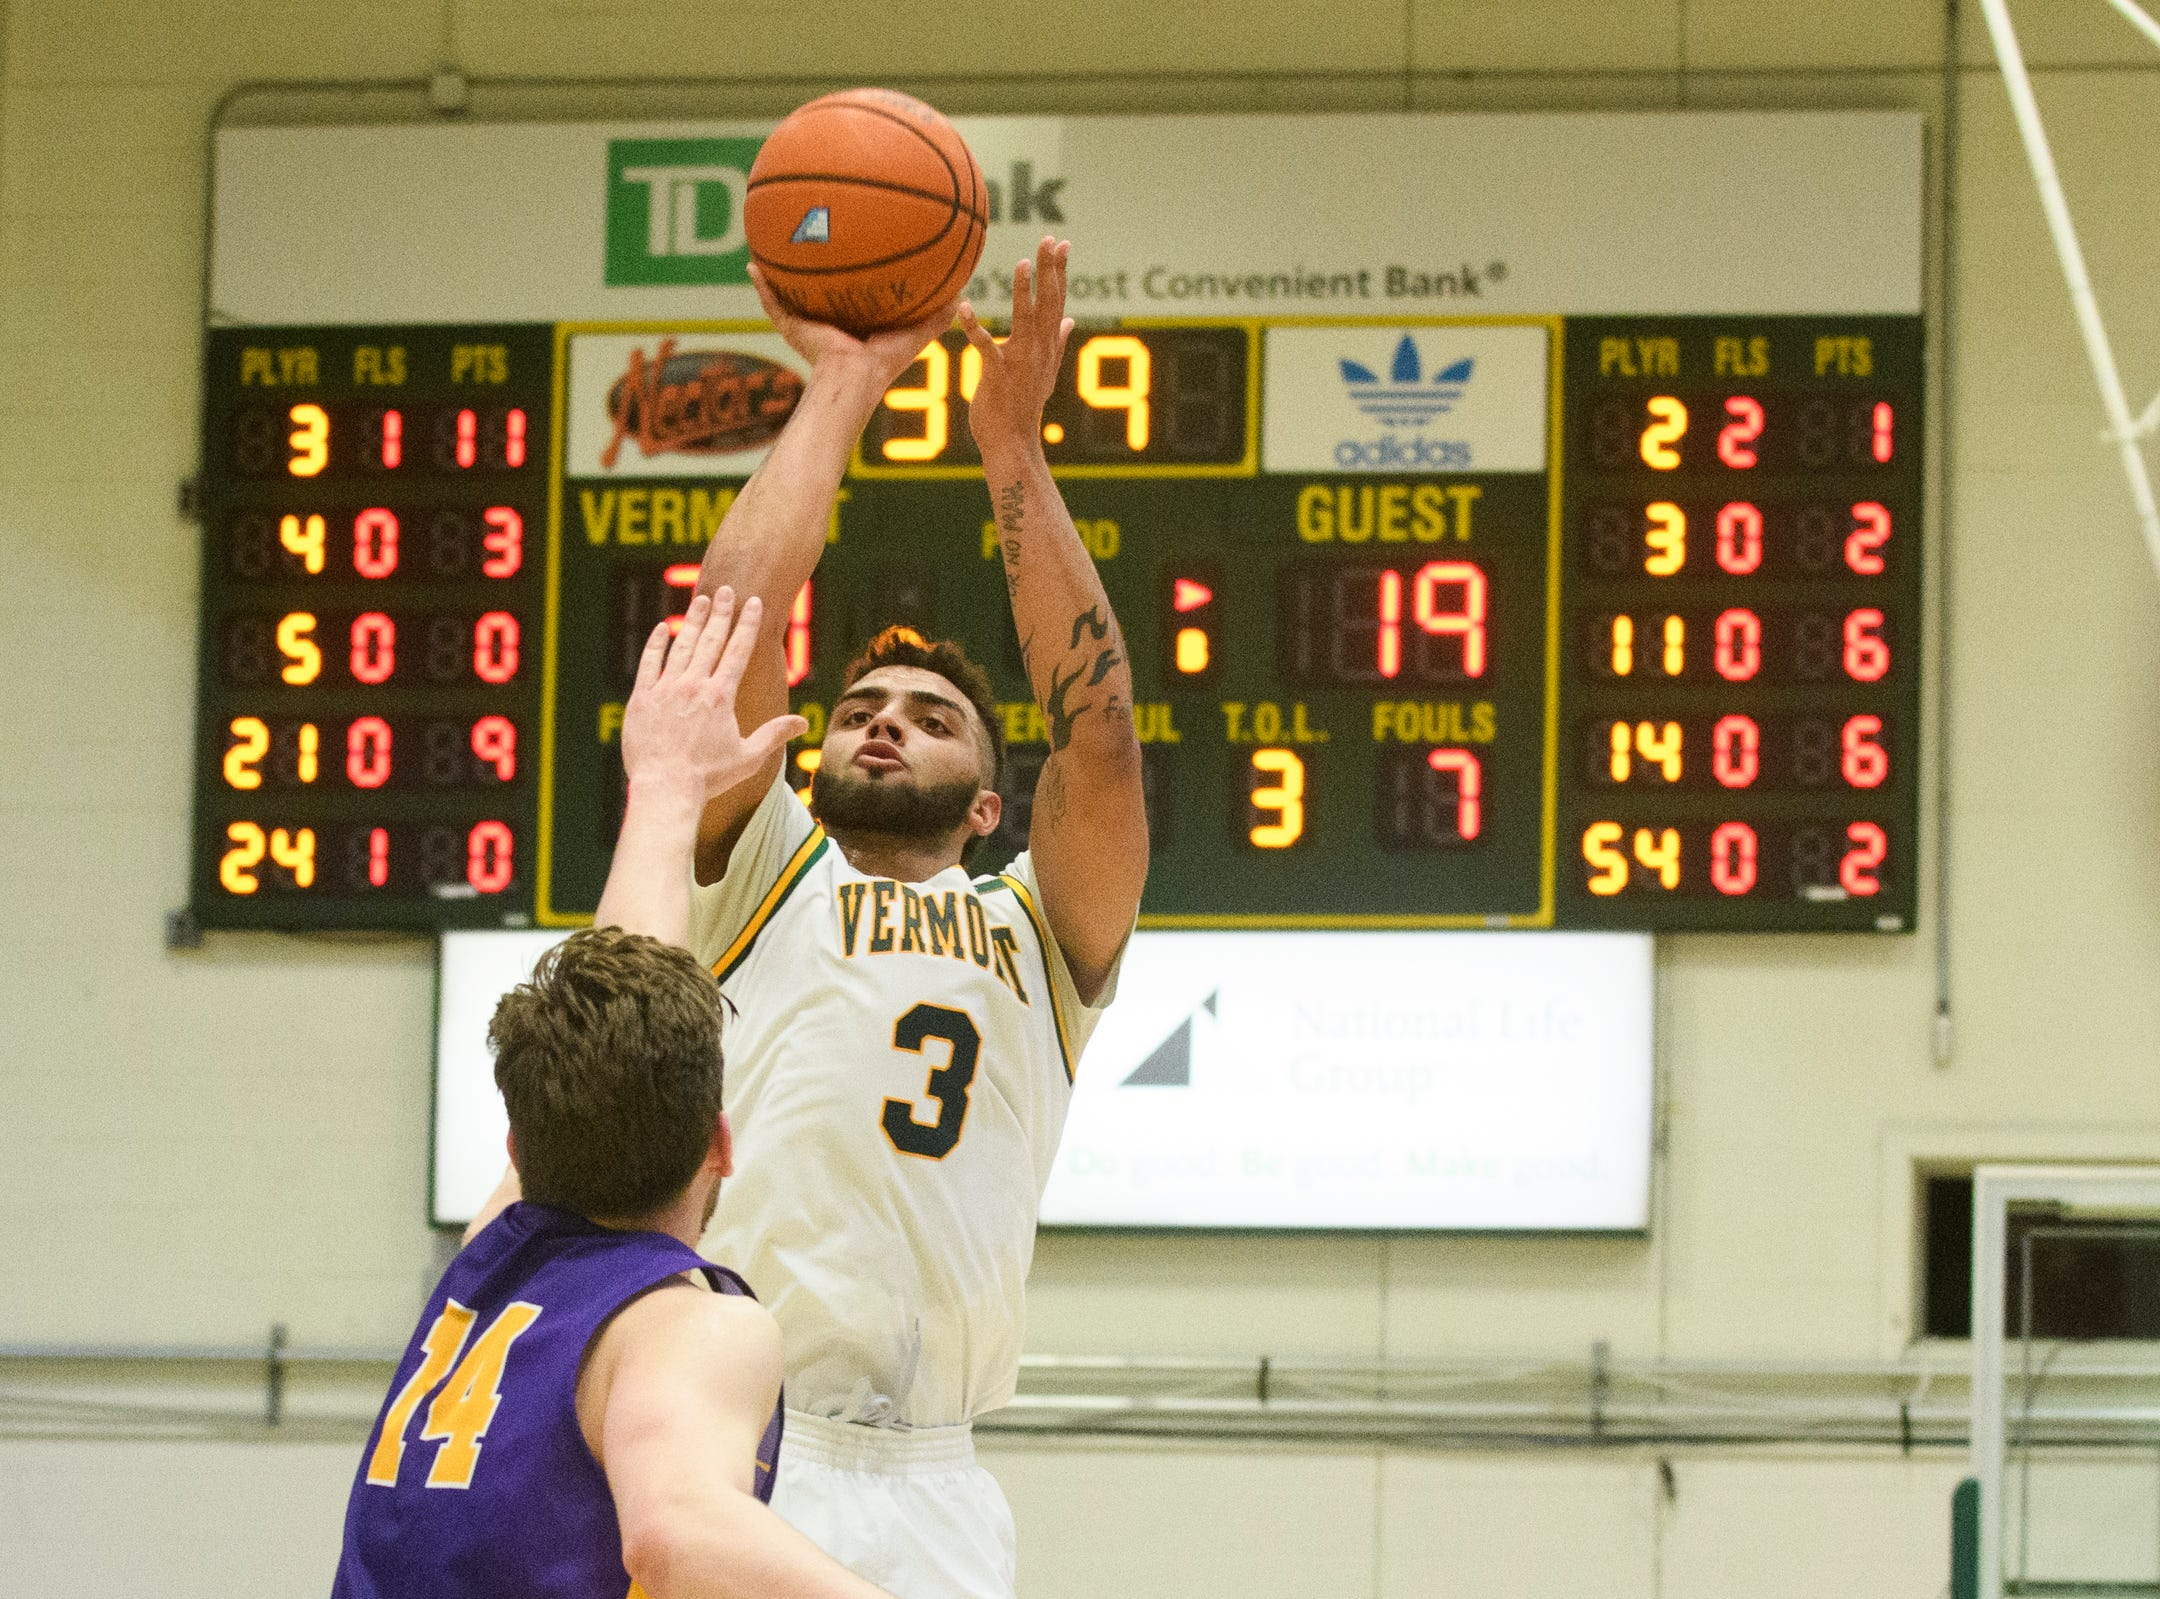 Vermont forward Anthony Lamb (3) shoots the ball over Albany's Adam Lulka (14) during the men's basketball game between the Albany Great Danes and the Vermont Catamounts at Patrick Gym on Saturday February 9, 2019 in Burlington, Vermont.